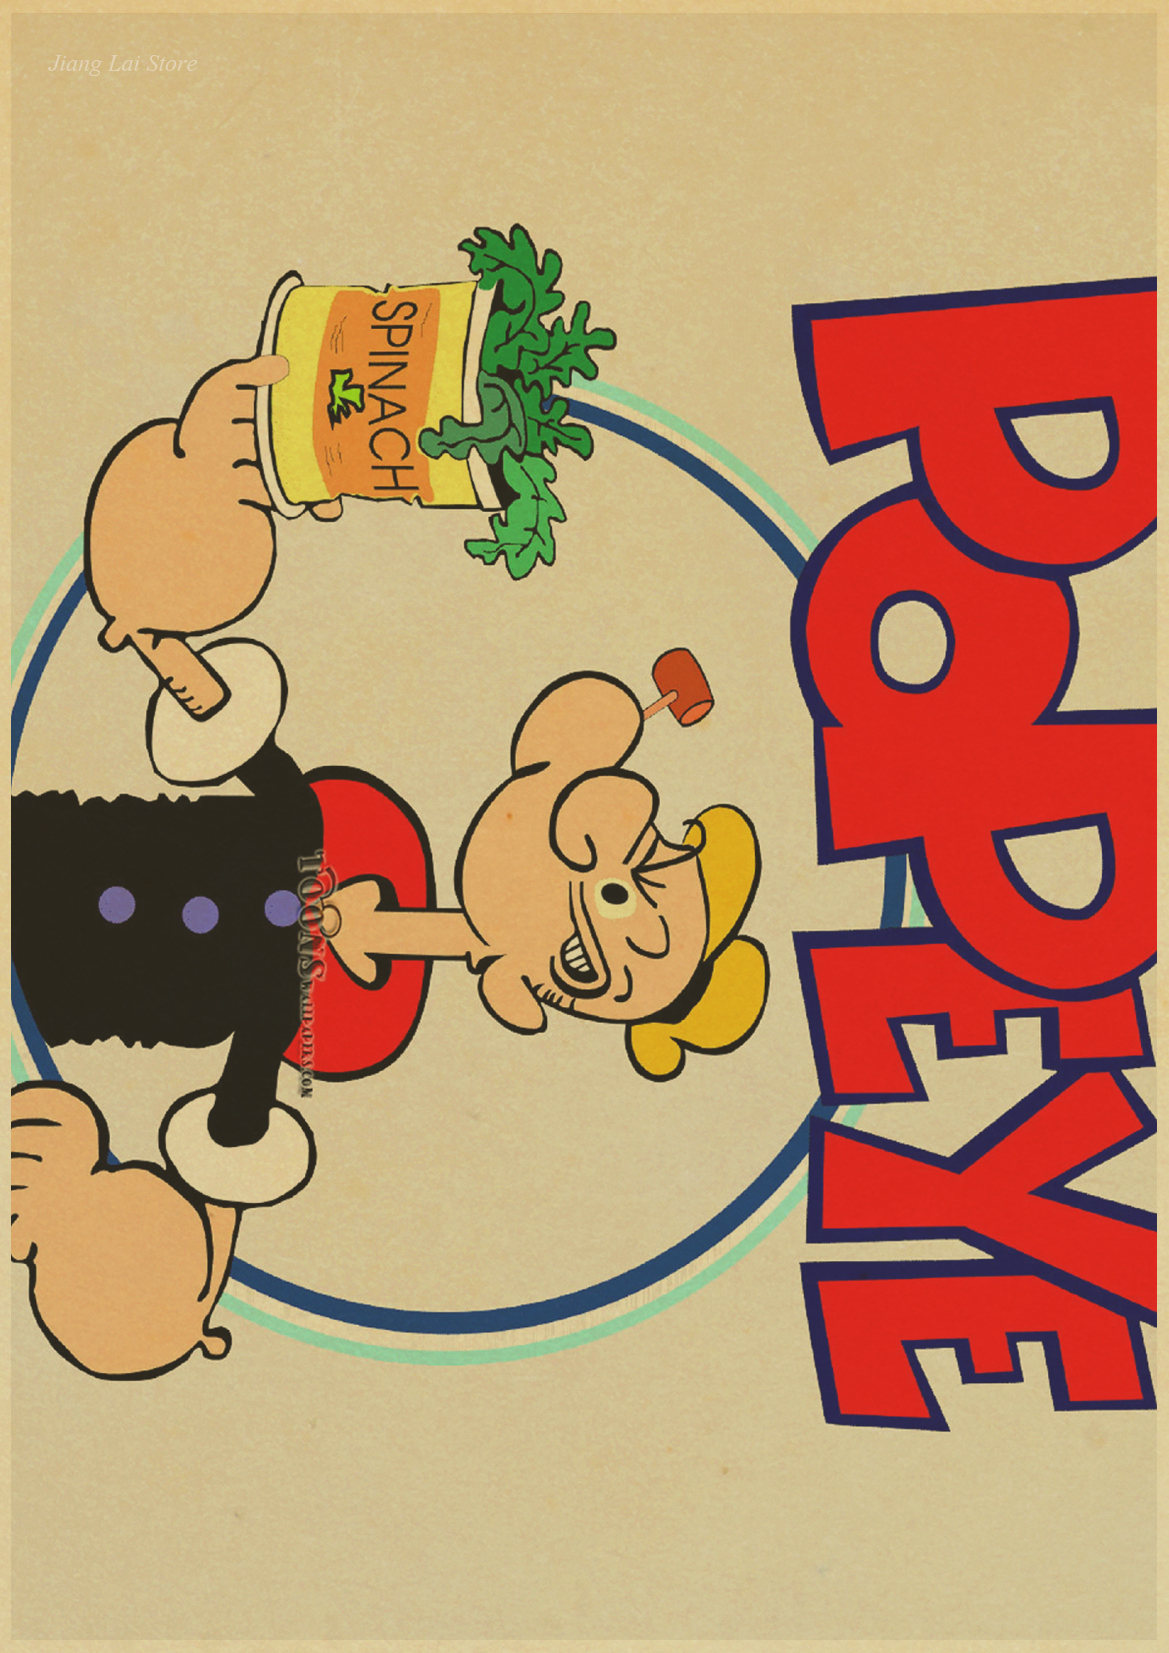 Vintage popeye the sailor man retro poster retro art wall home ...